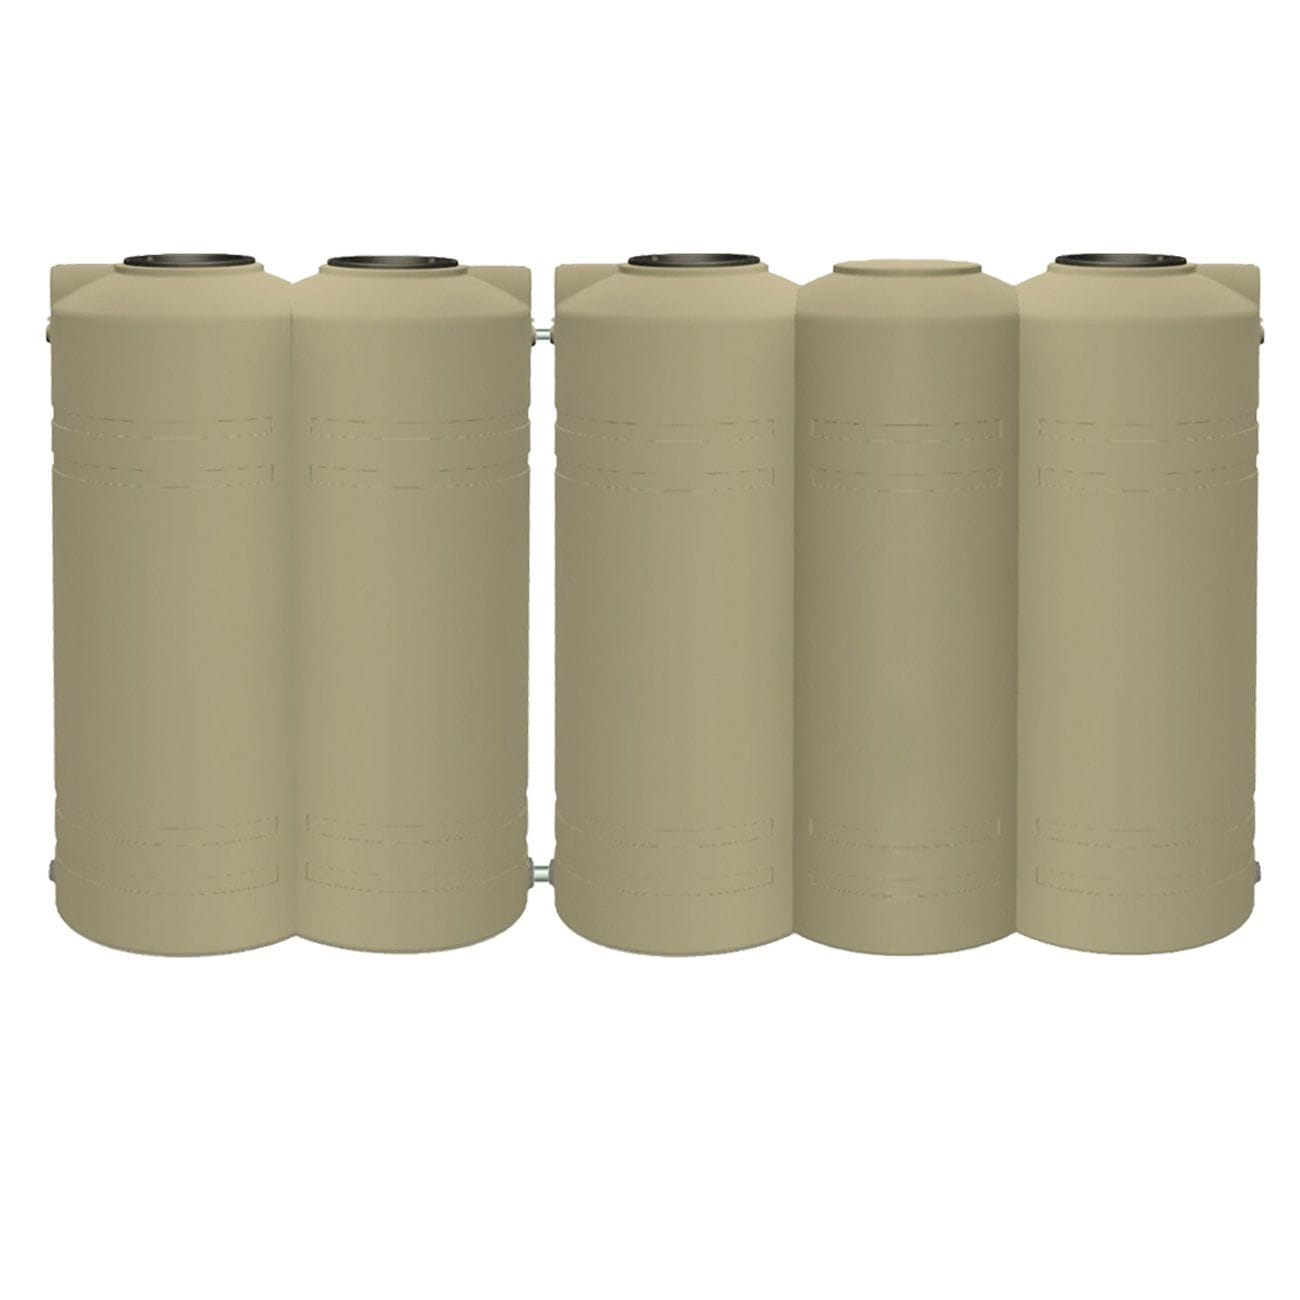 5000 Litre Slim - Slender in line 5 Barrel Straight Wall Poly Tank